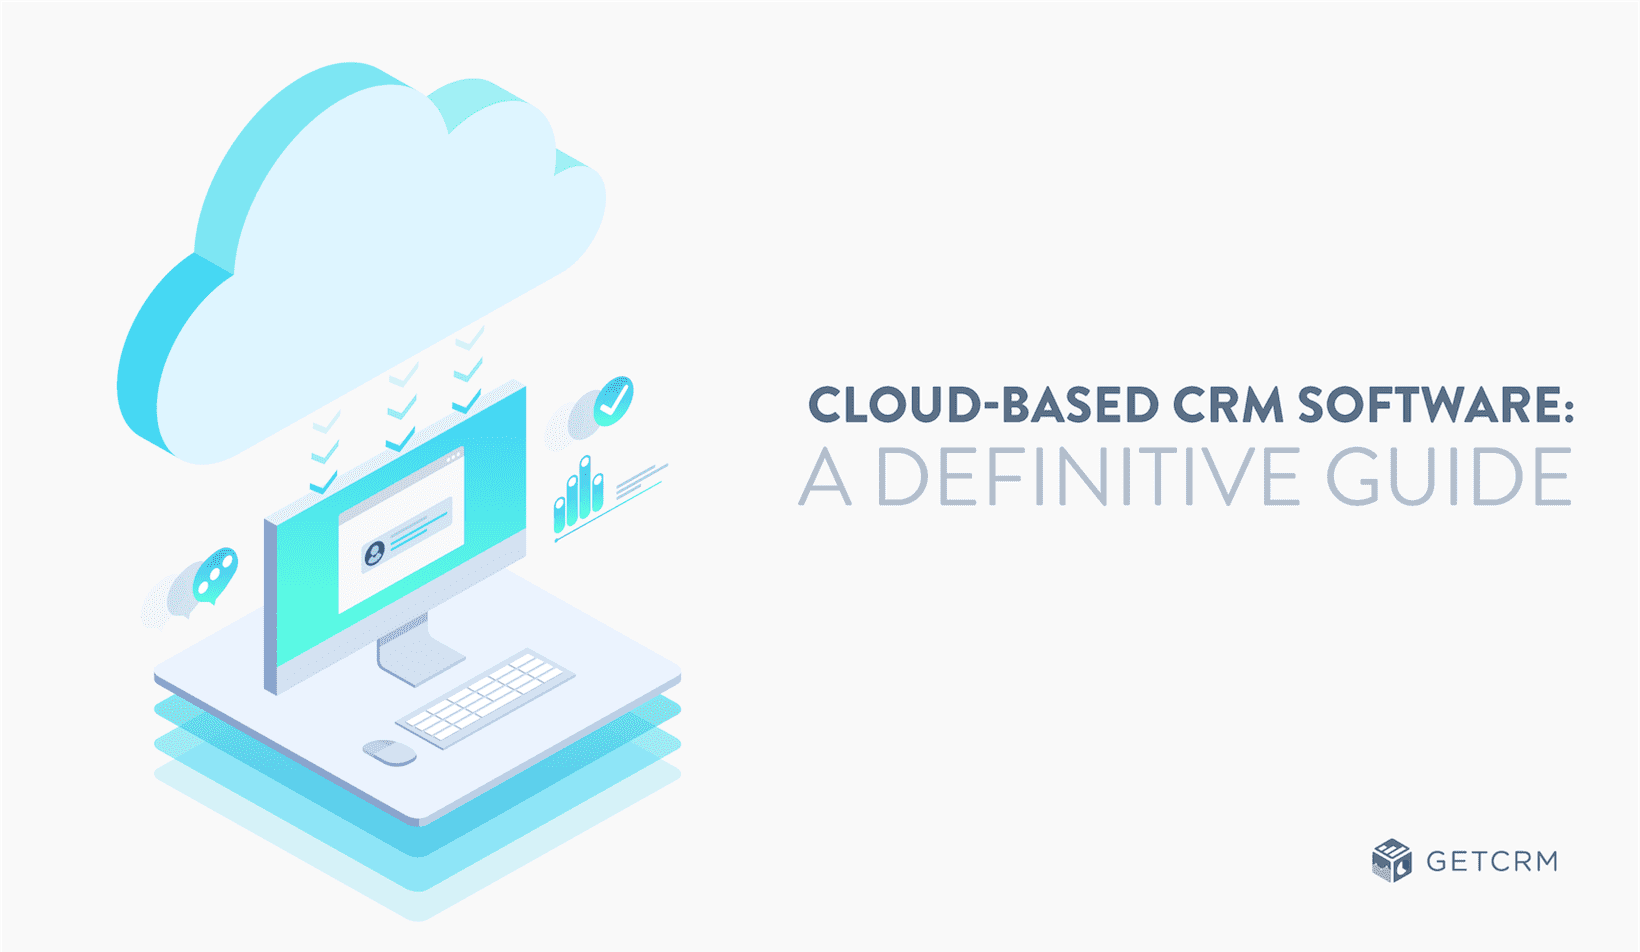 Cloud Based Sales Management Software Cloud-based Crm Software: A Definitive Guide | Getcrm